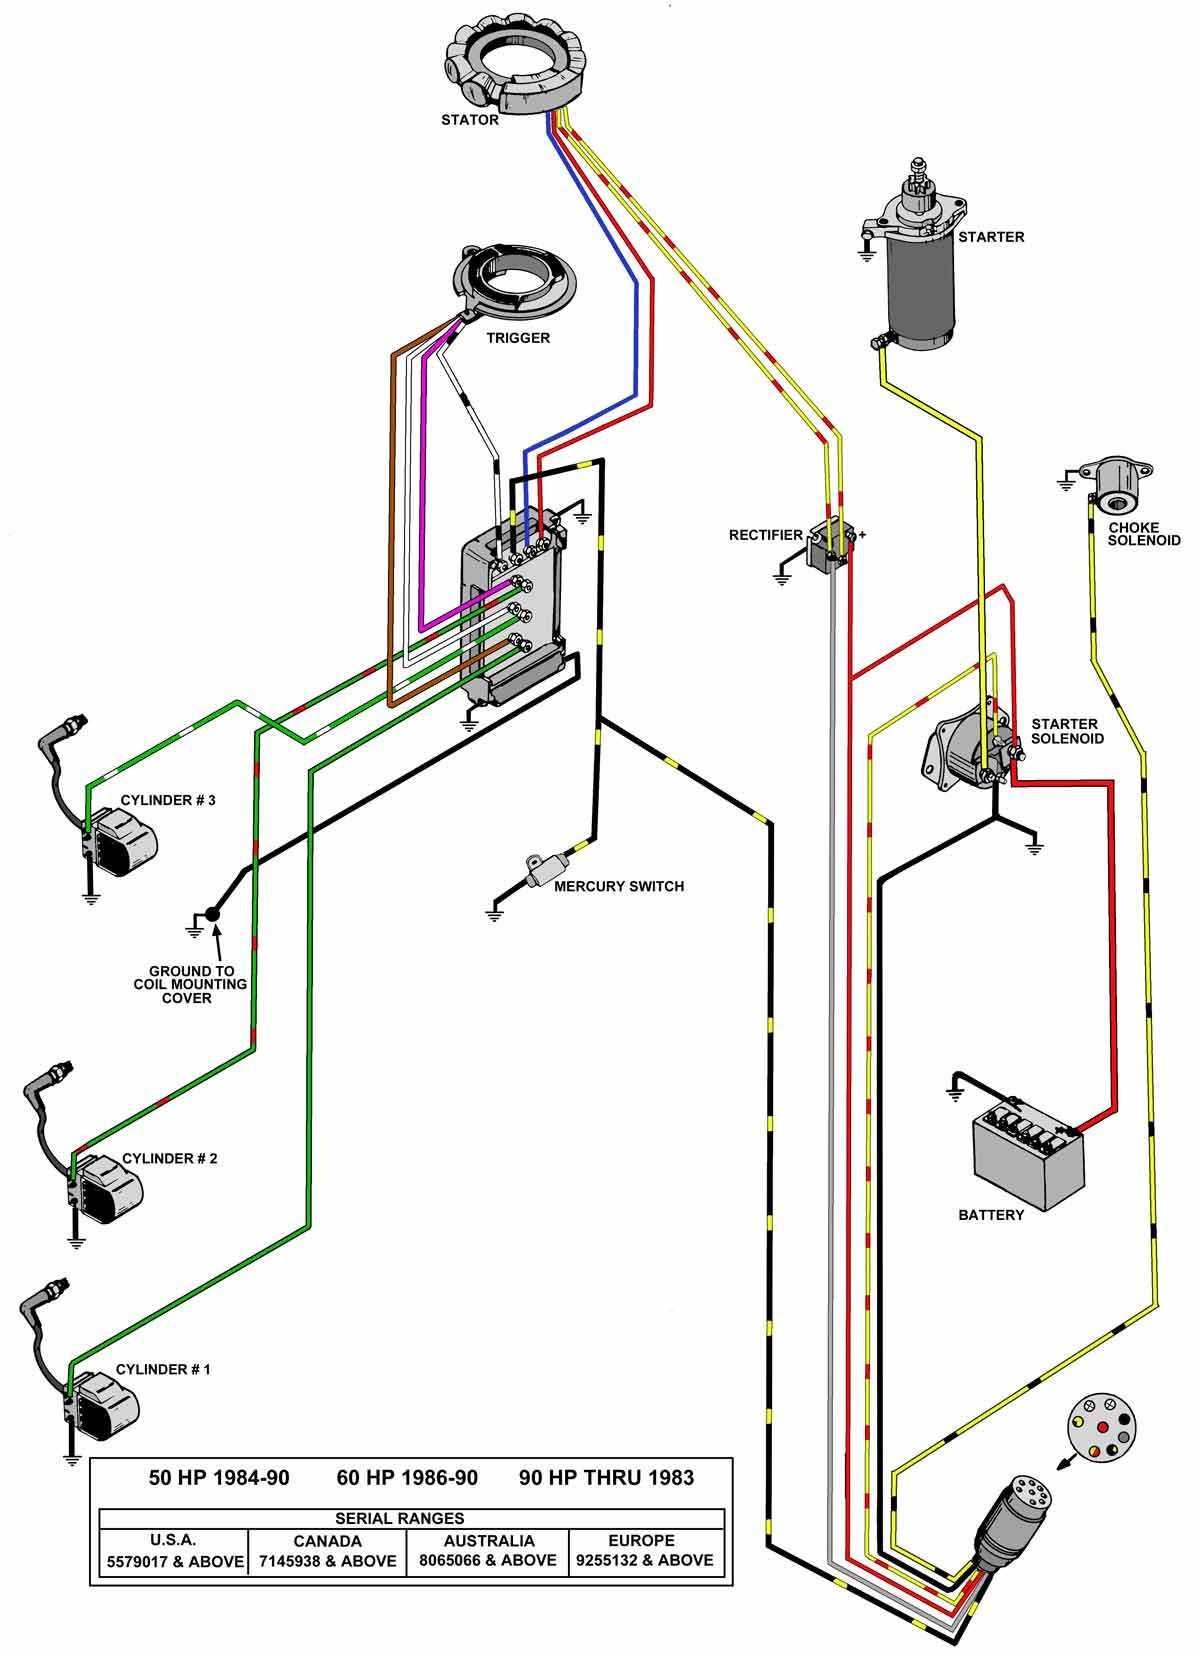 Diagram Of A Four Stroke Engine Spares for Makita Bhx2500 4 Stroke on